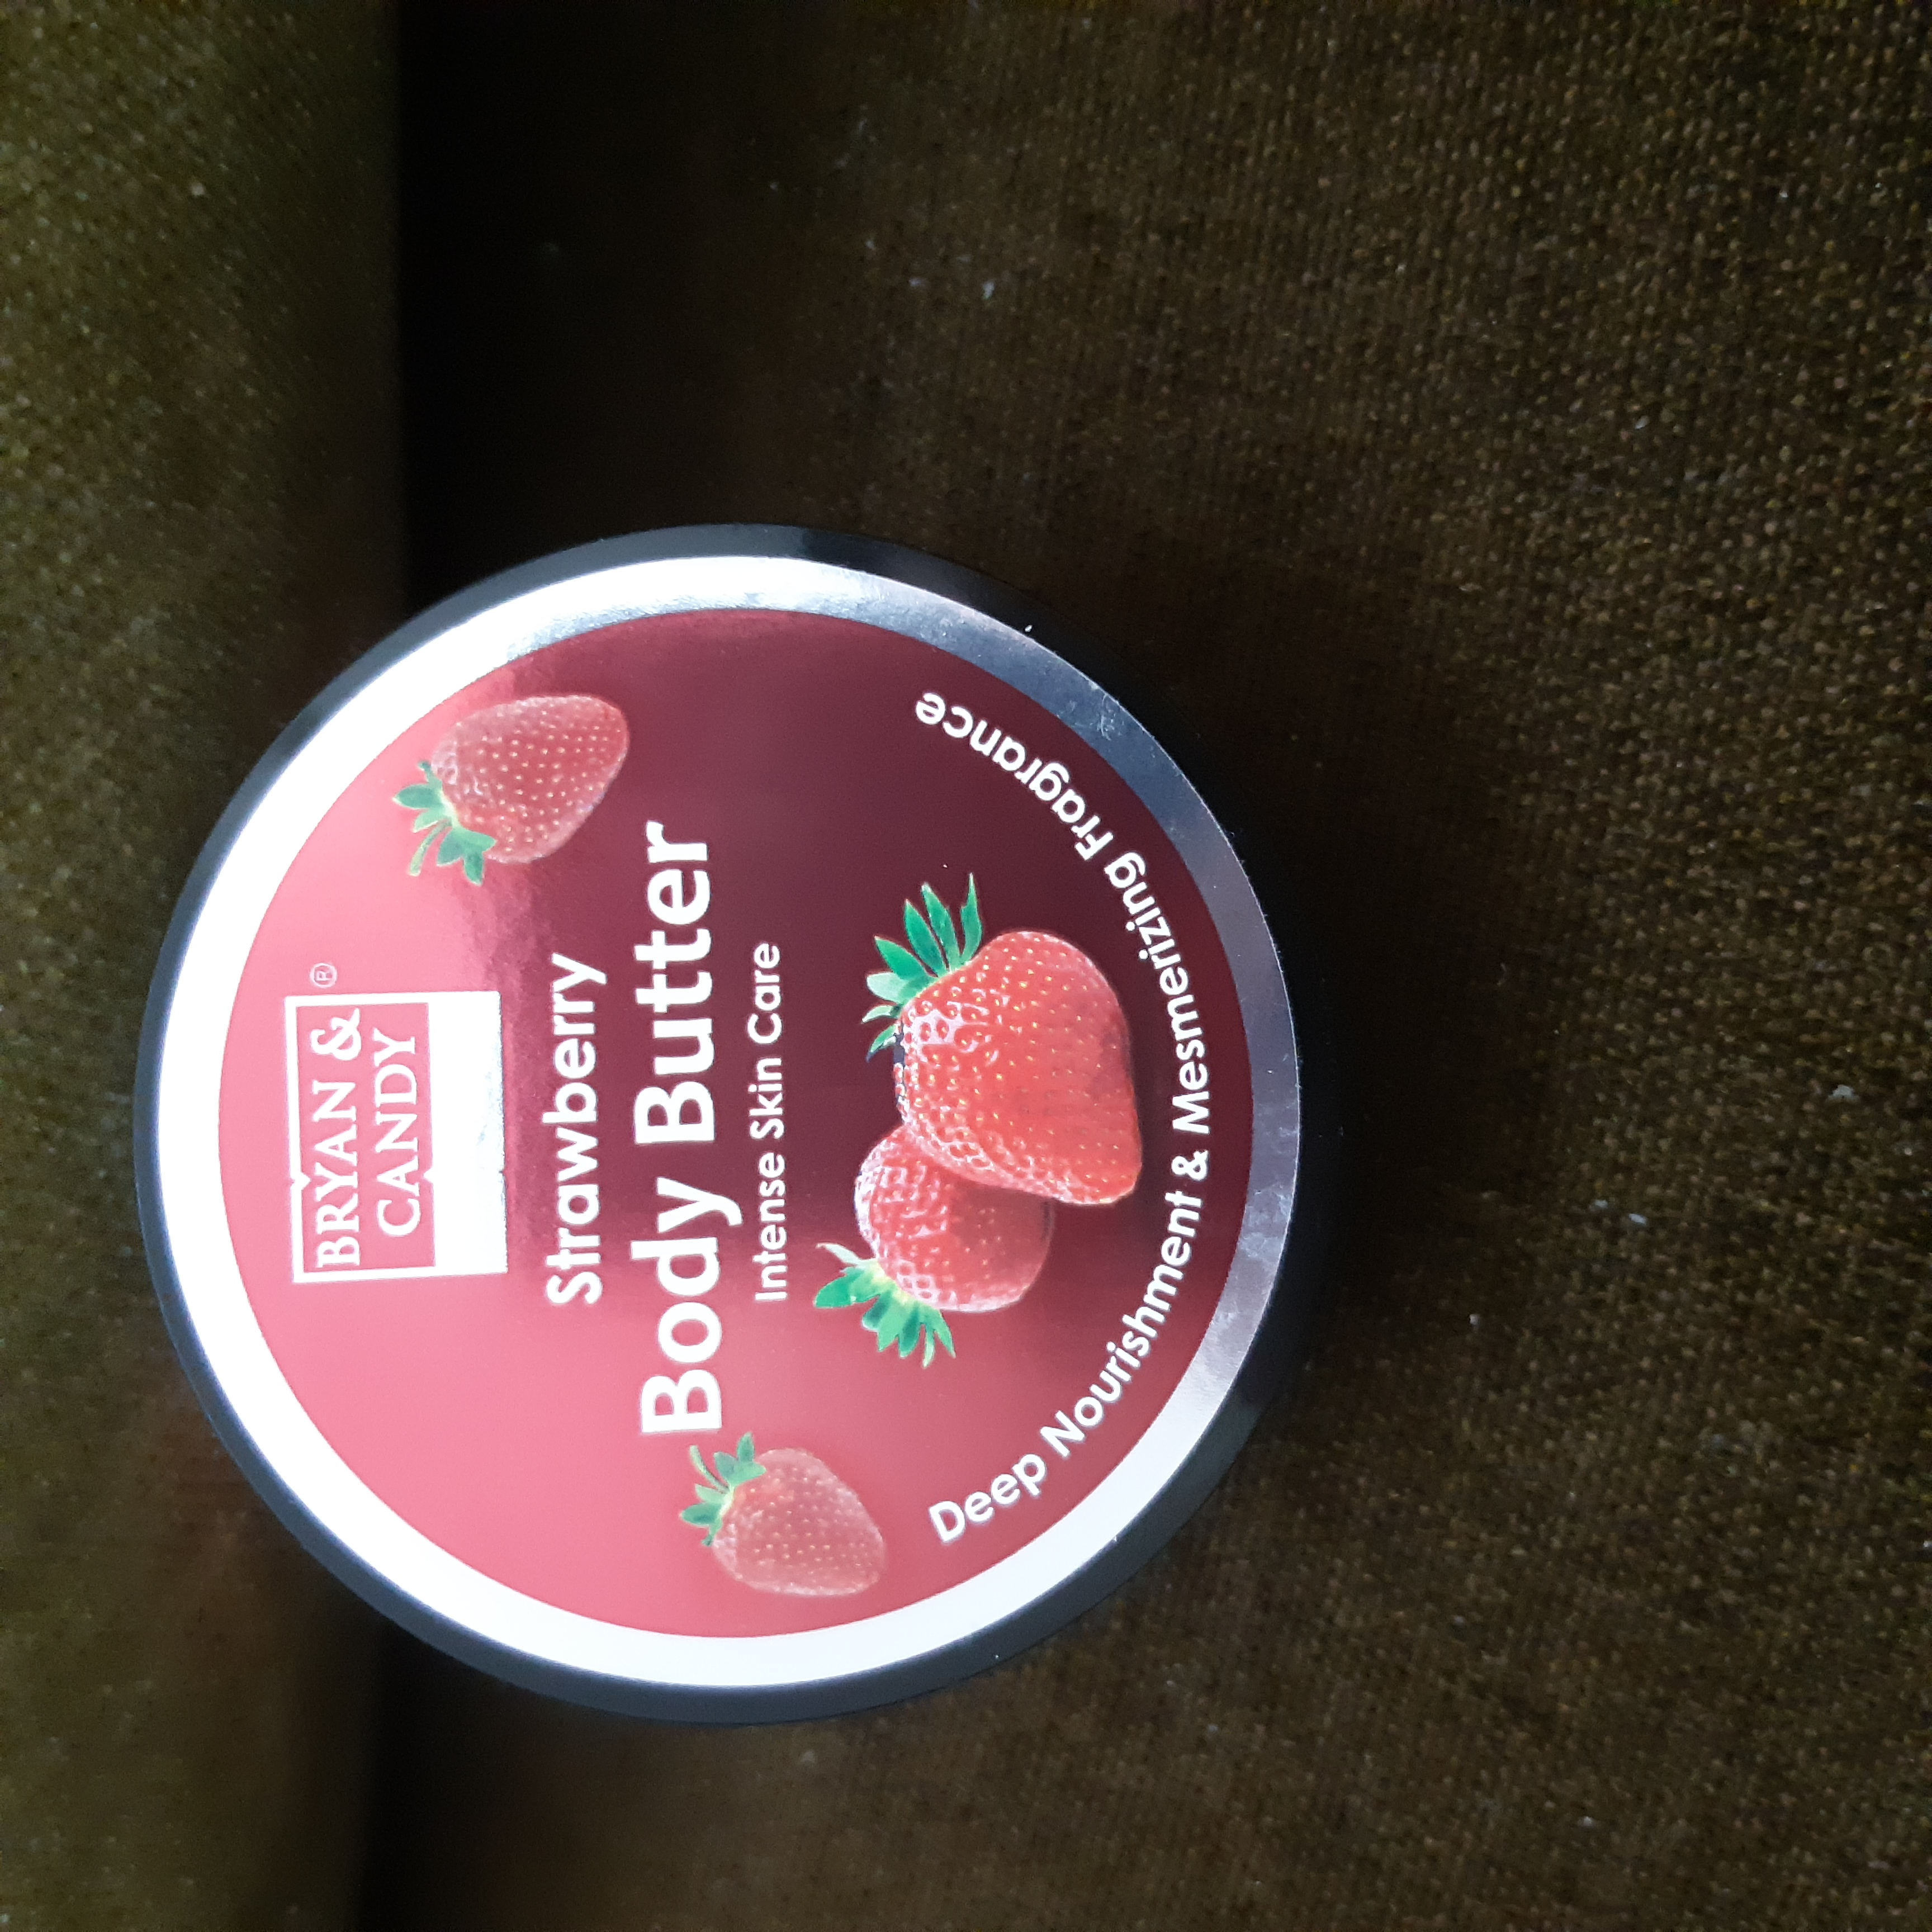 Bryan & Candy New York Strawberry Body Butter-Good body butter for youthful skin appearance-By themombliss